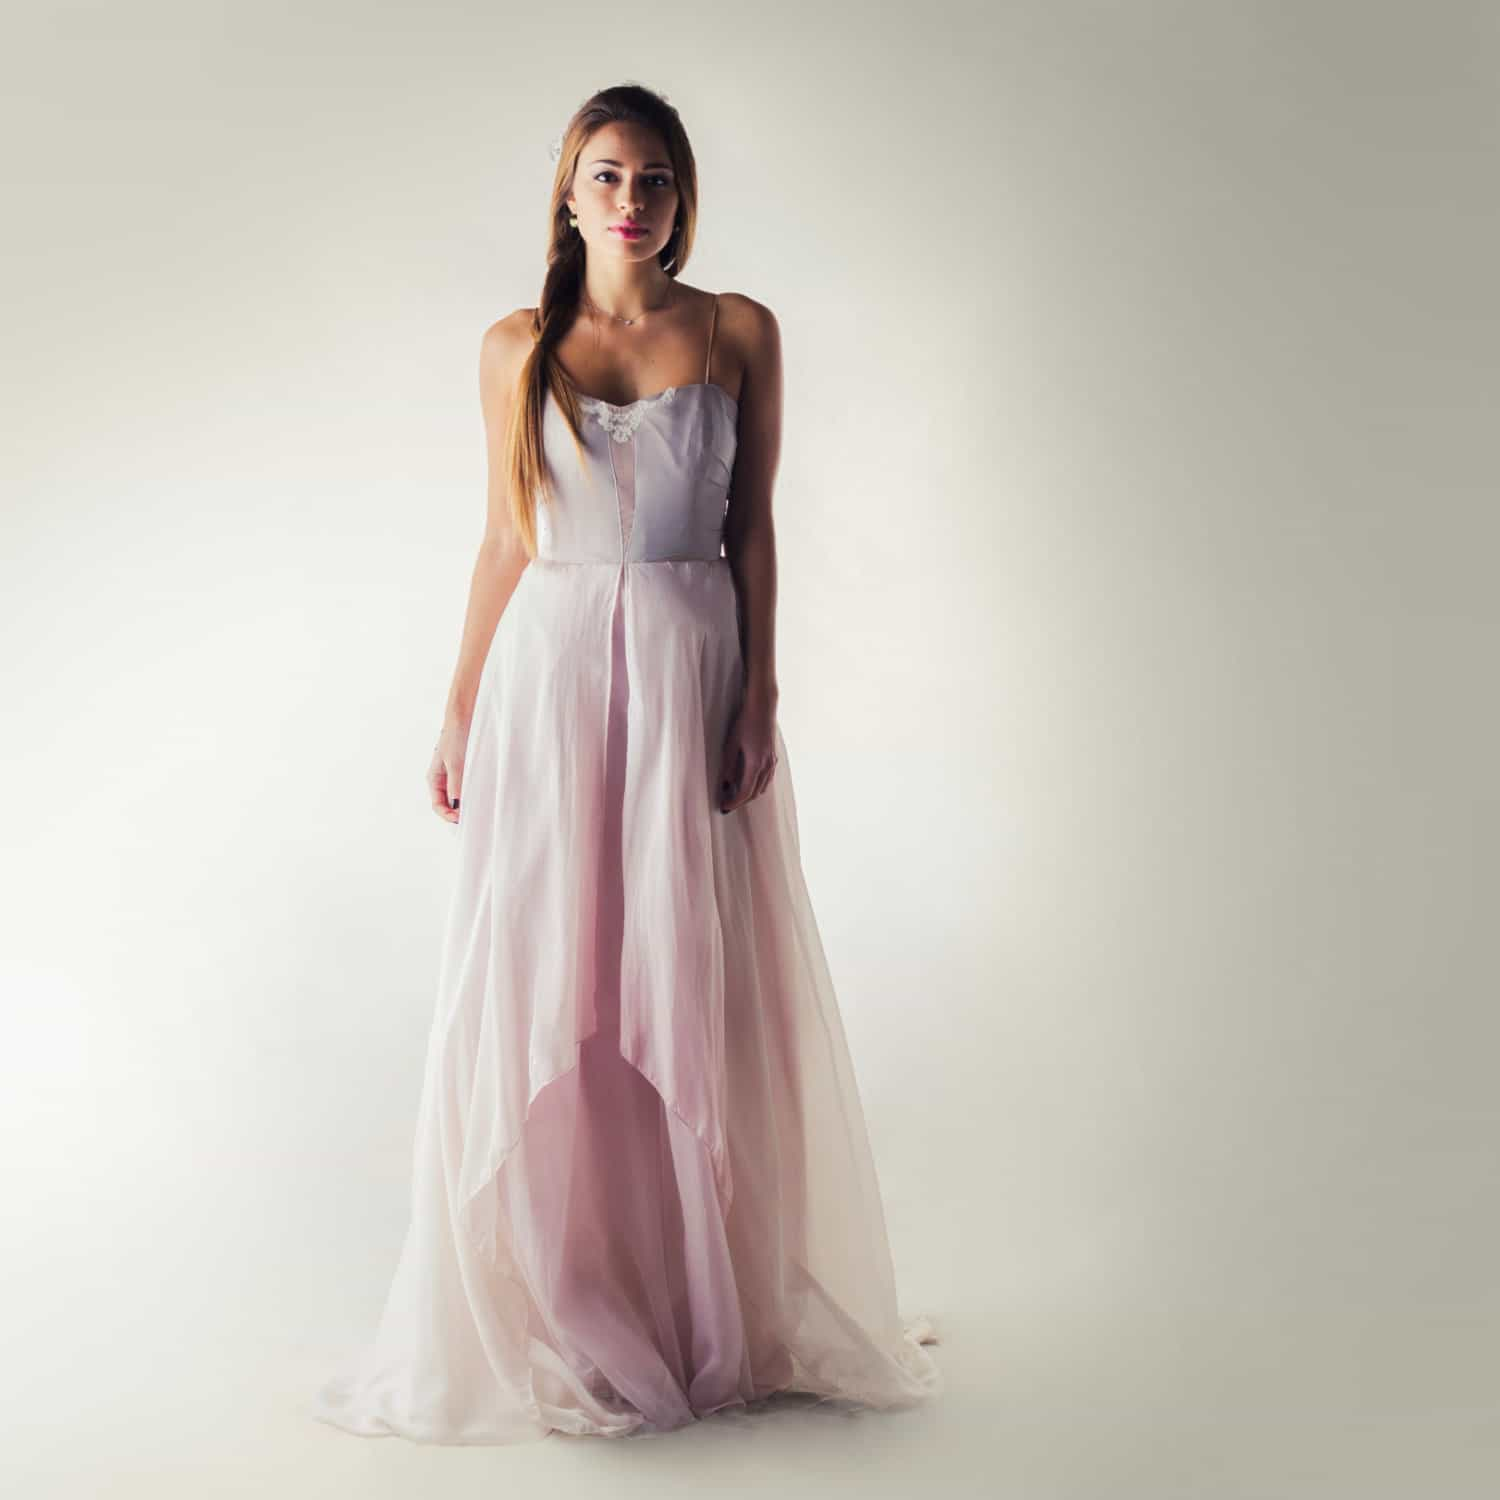 Lunaria ~ Lavender fairy wedding dress - Larimeloom